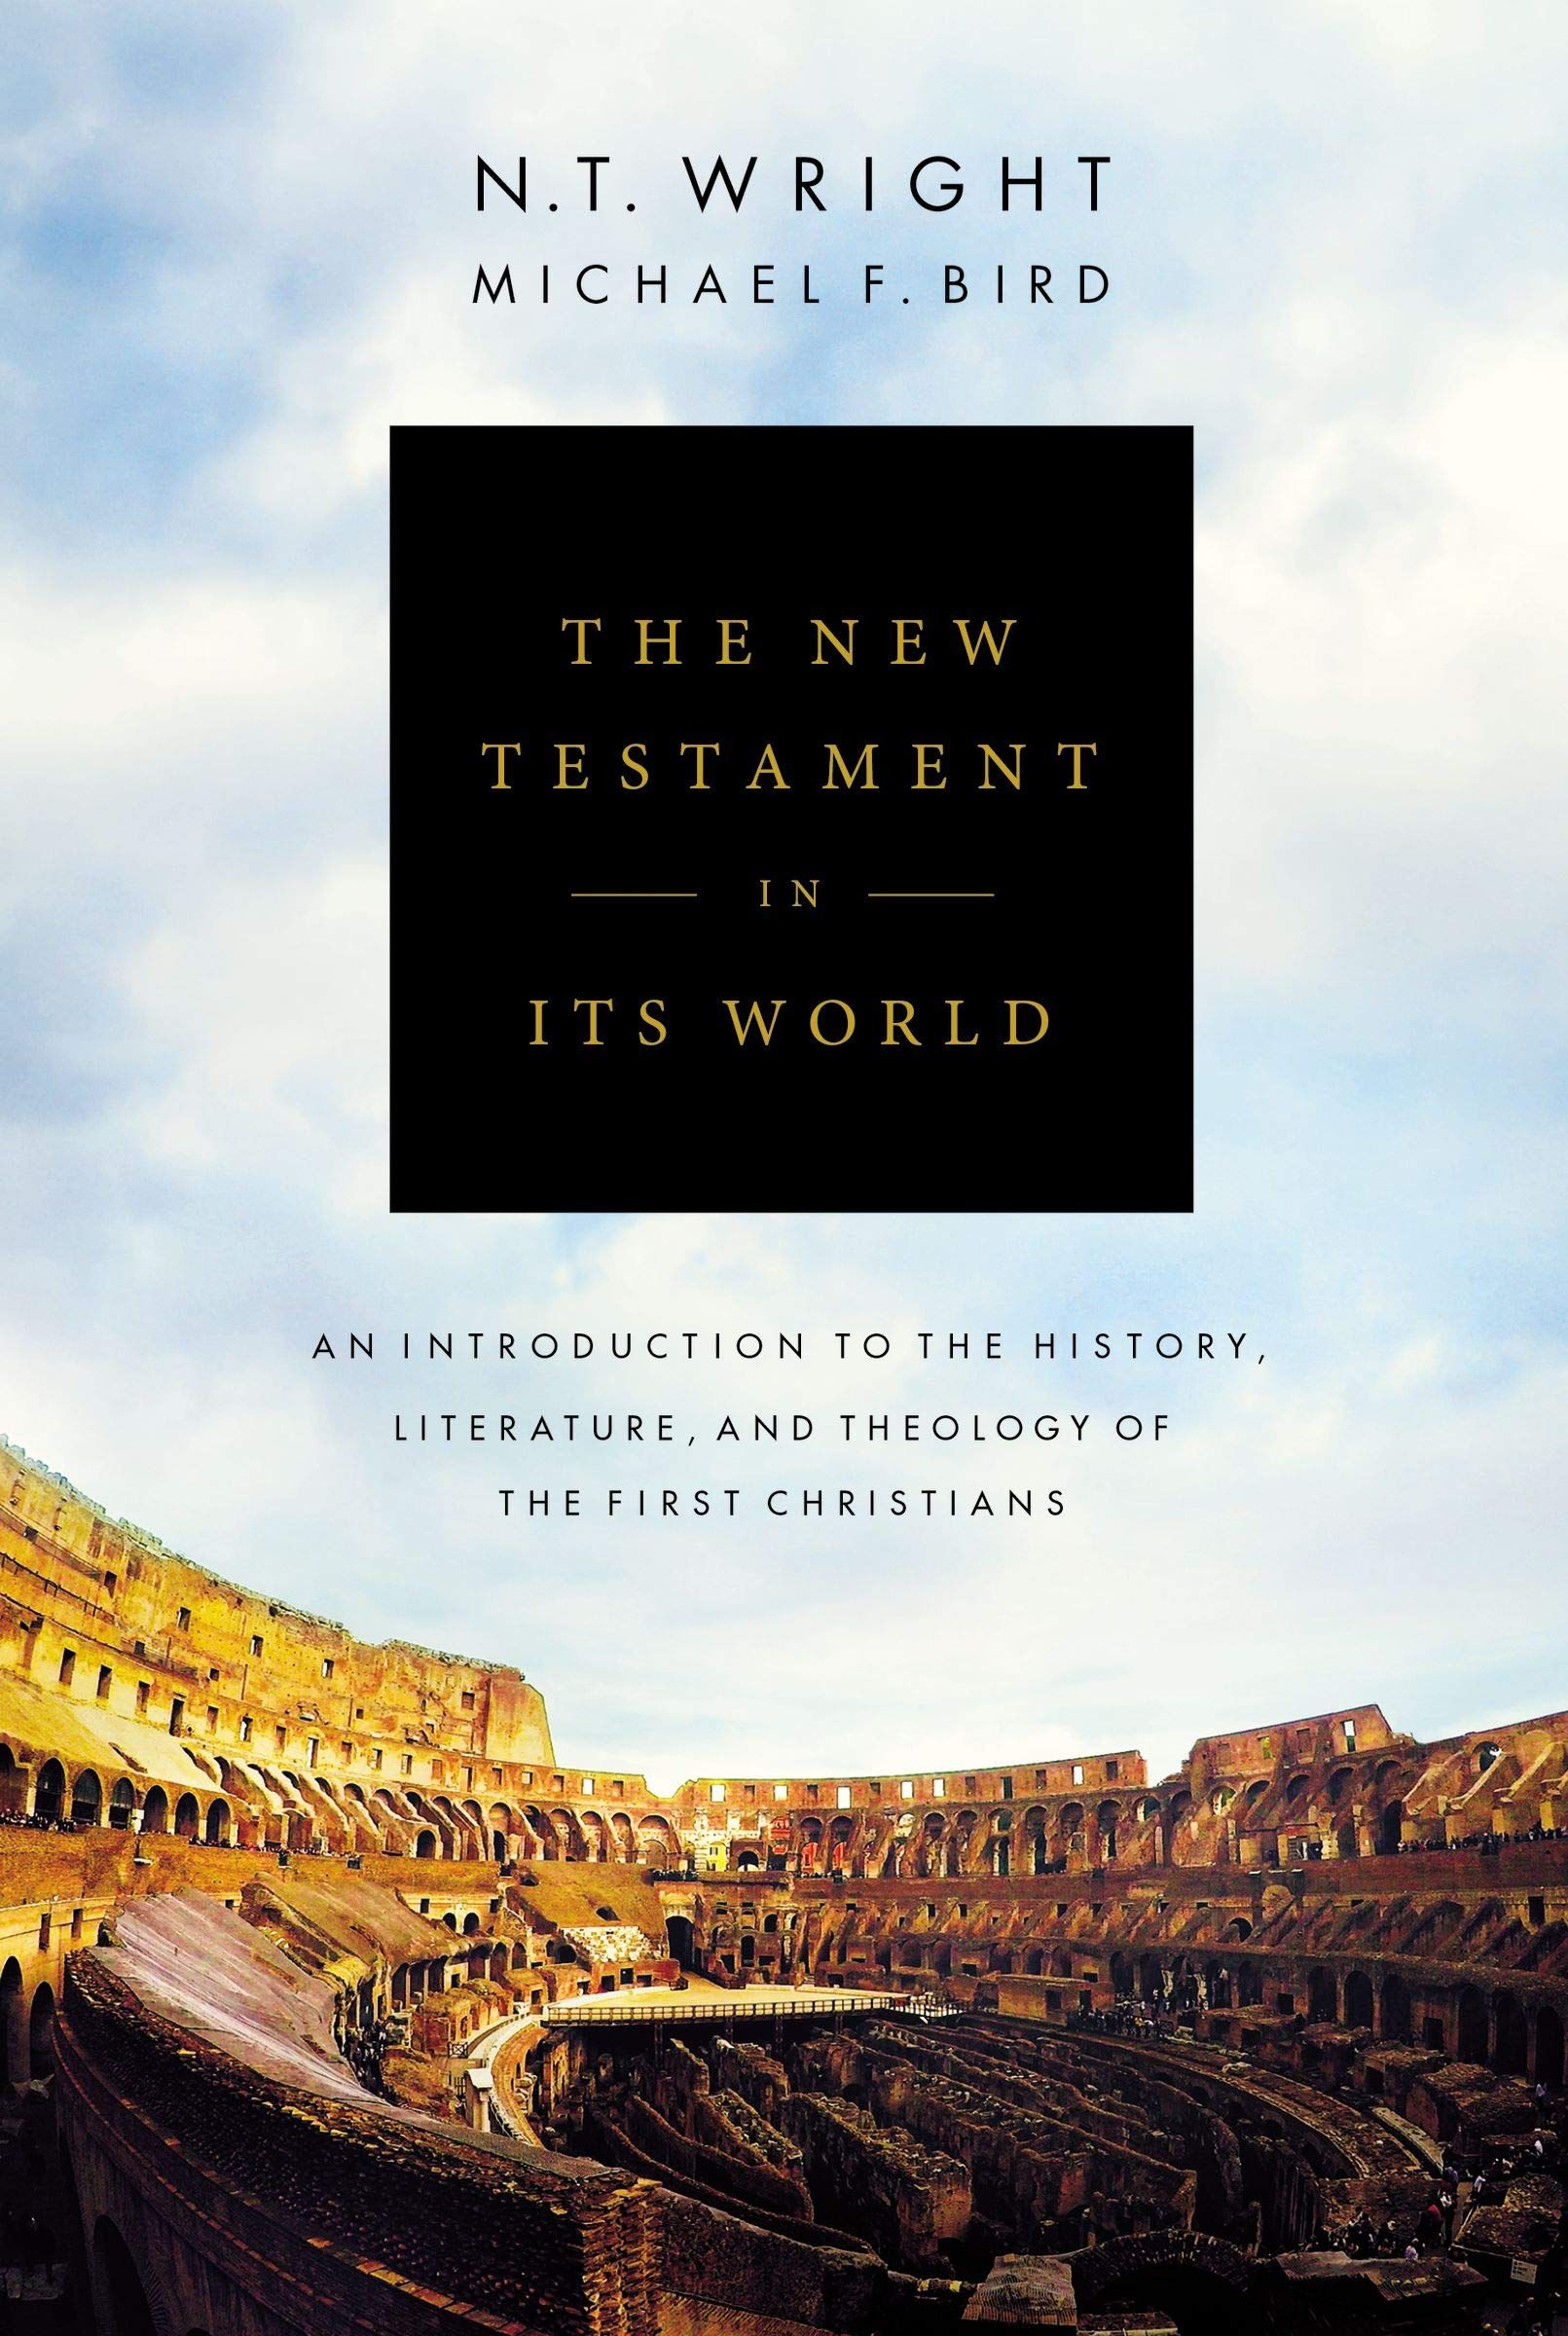 The New Testament in Its World: An Introduction to the History, Literature, and Theology of the First Christians by HarperCollins Christian Pub.